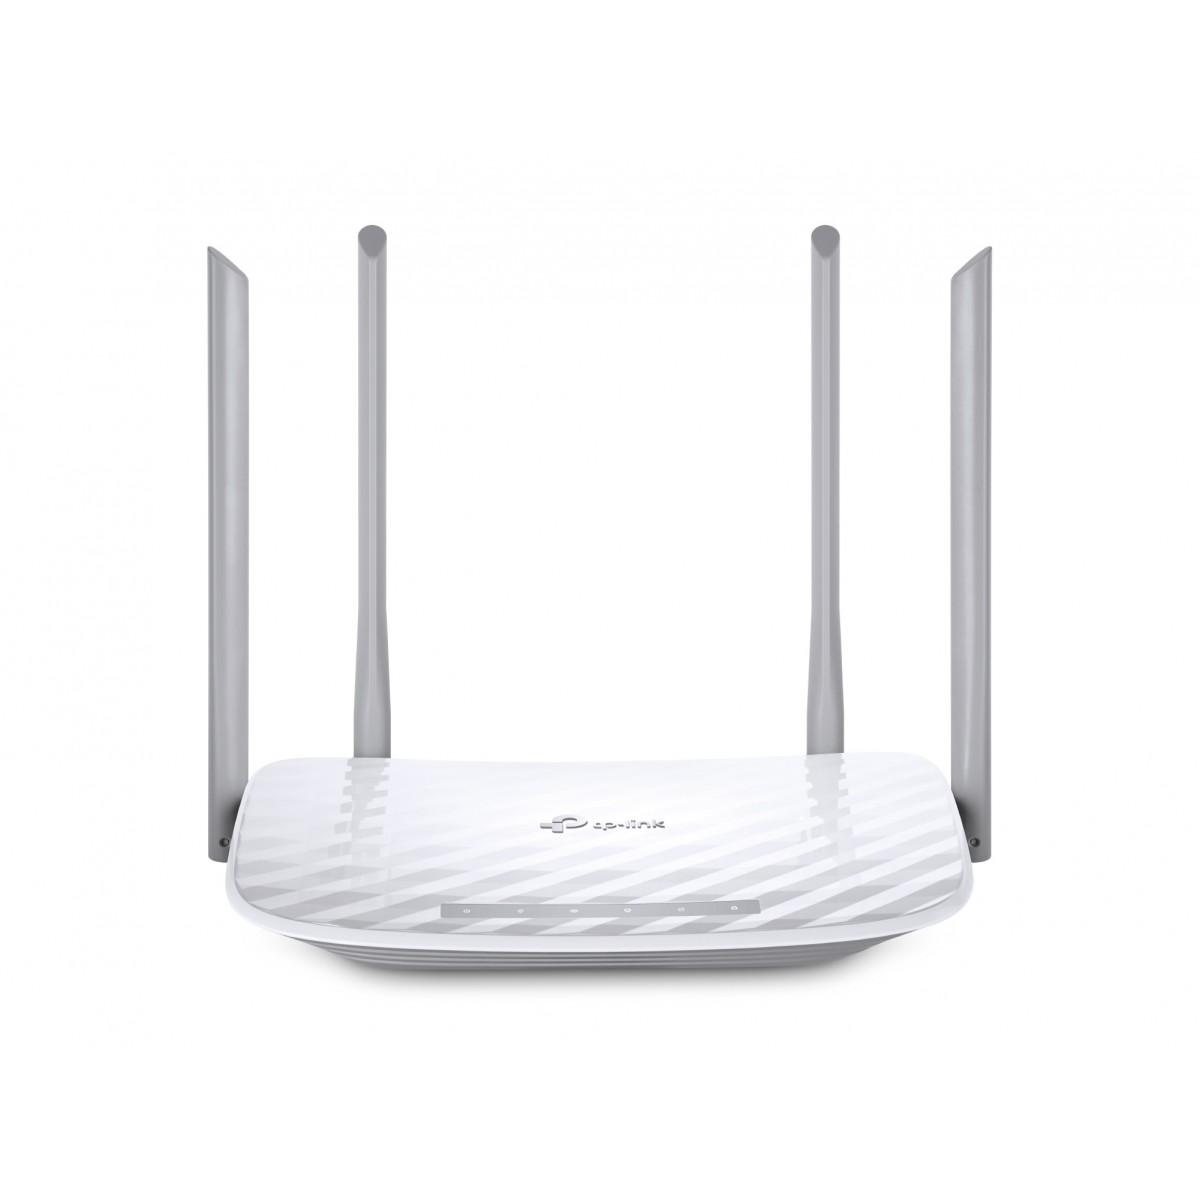 TP-LINK  Archer C50 AC1200 Wireless Router